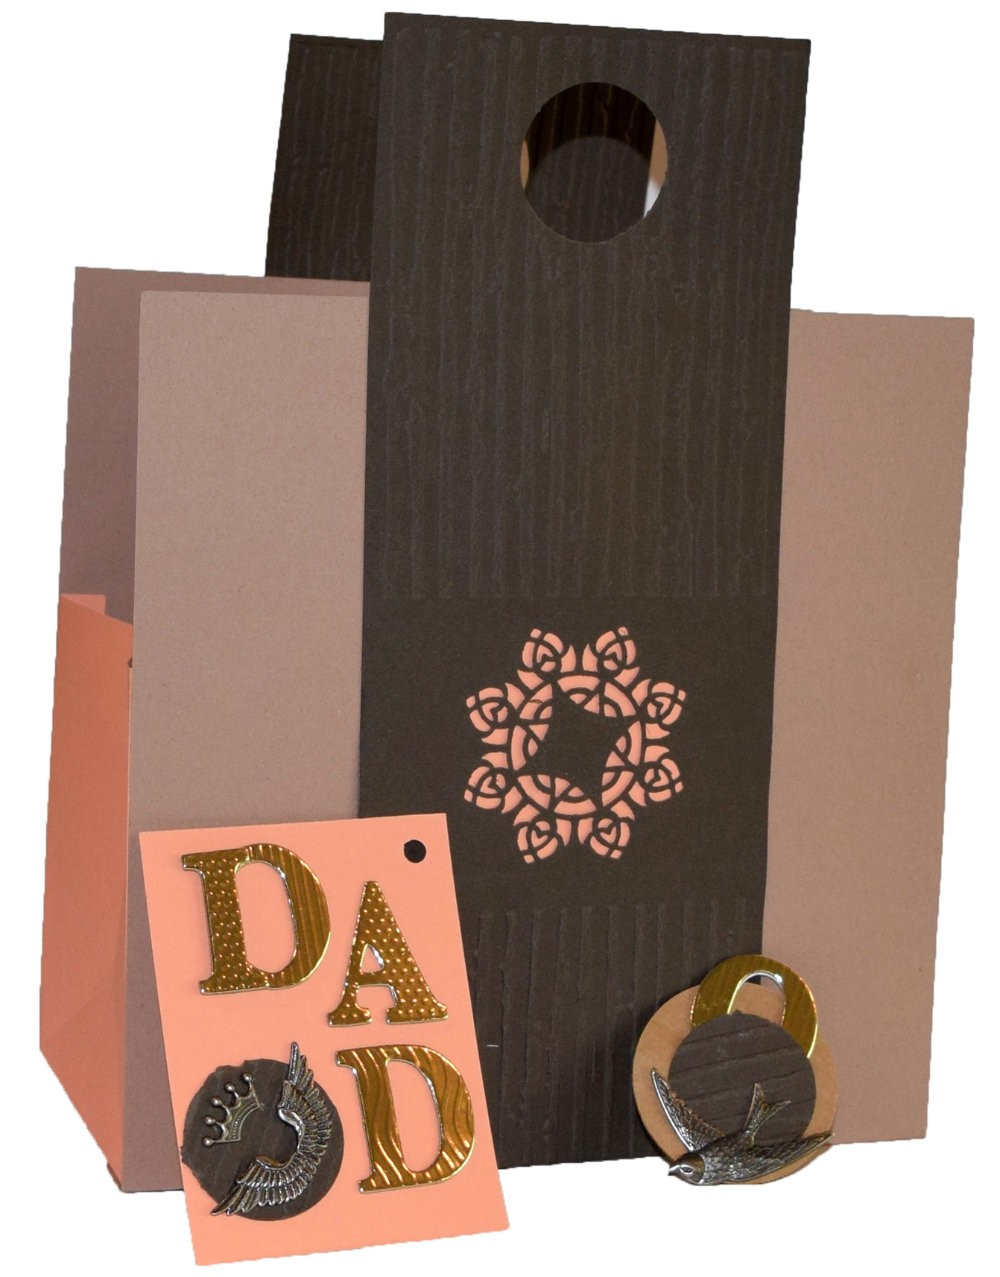 bag it up for dad in this handmade, cardstock gift bag - Paper Paper Fathers Day Bag 5 web - Bag it up for Dad in this handmade, cardstock gift bag